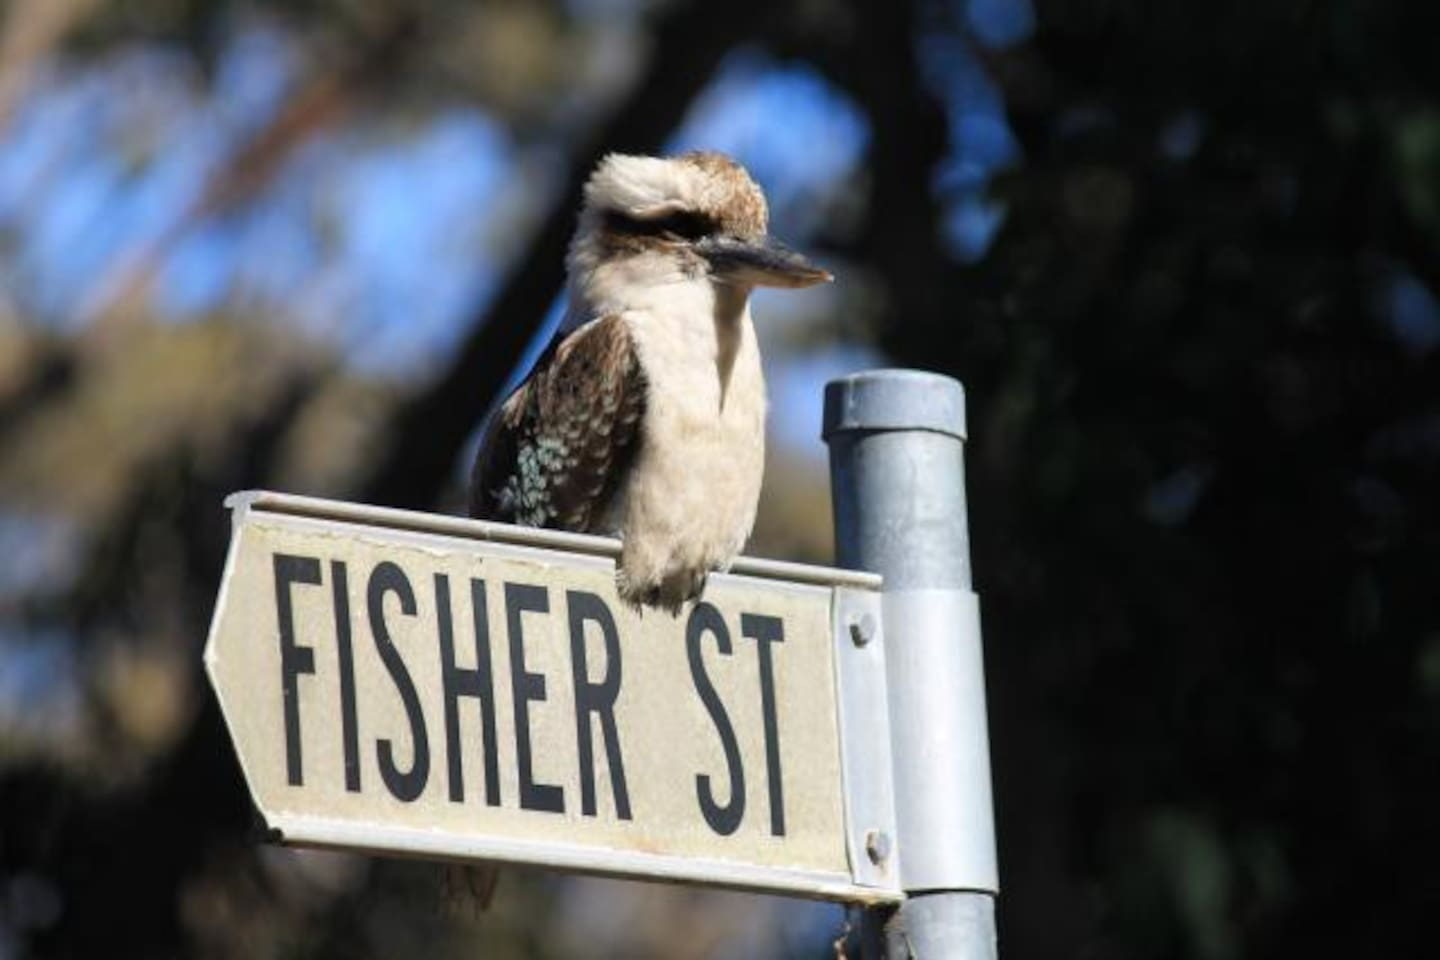 We have a family of kookaburras living in the surrounding trees.